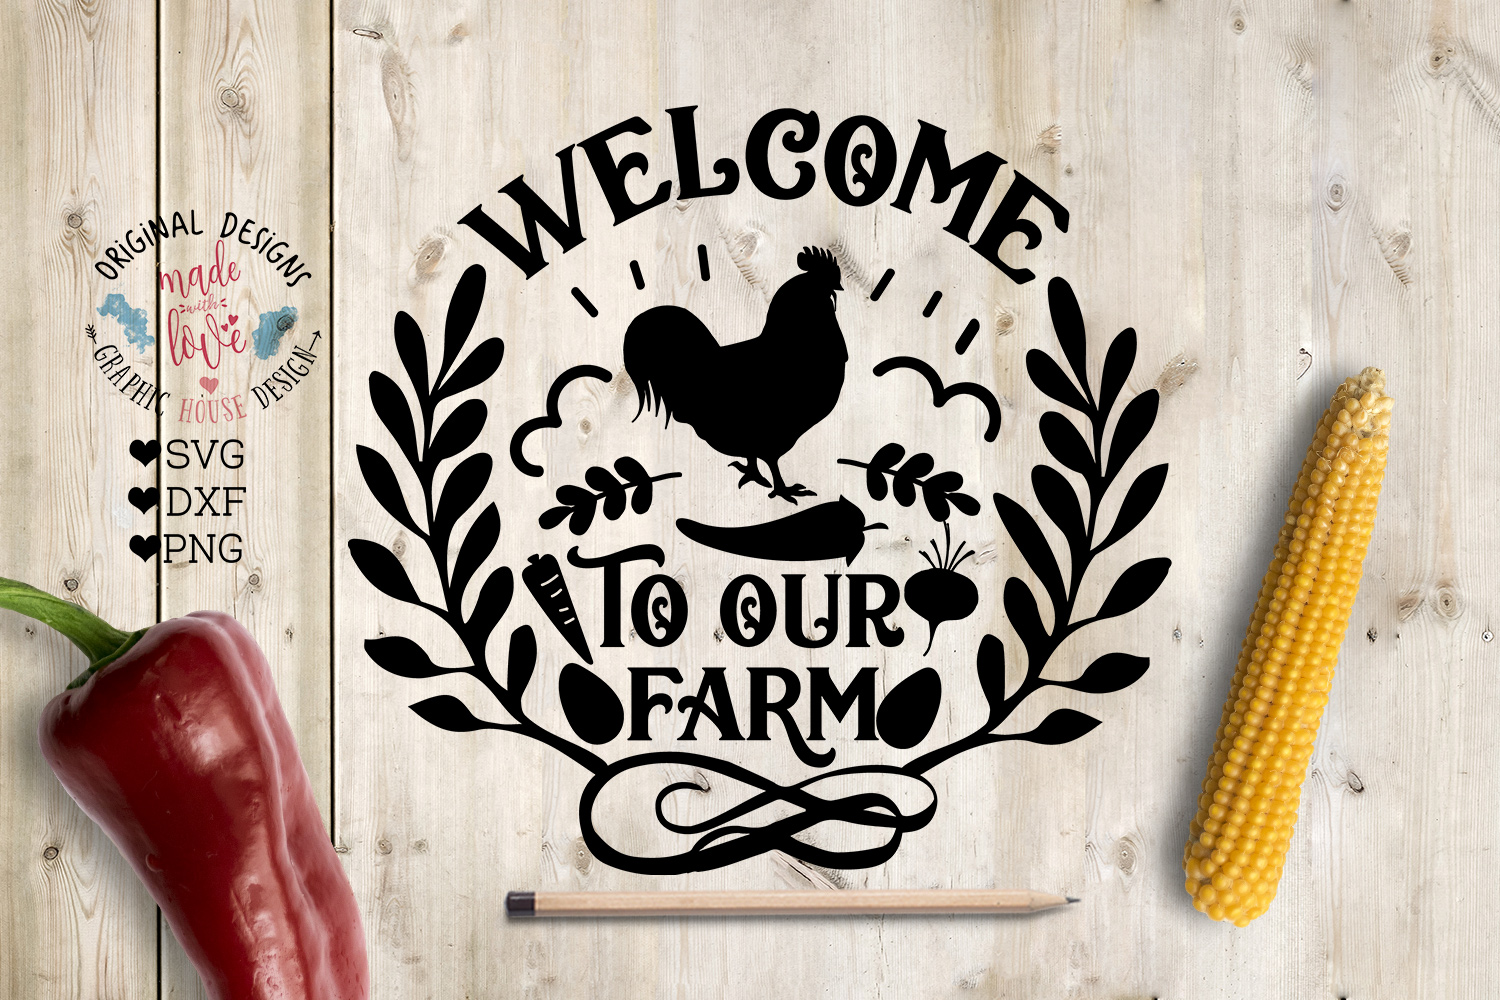 Welcome to Our Farm - Farmhouse Cut File example image 1